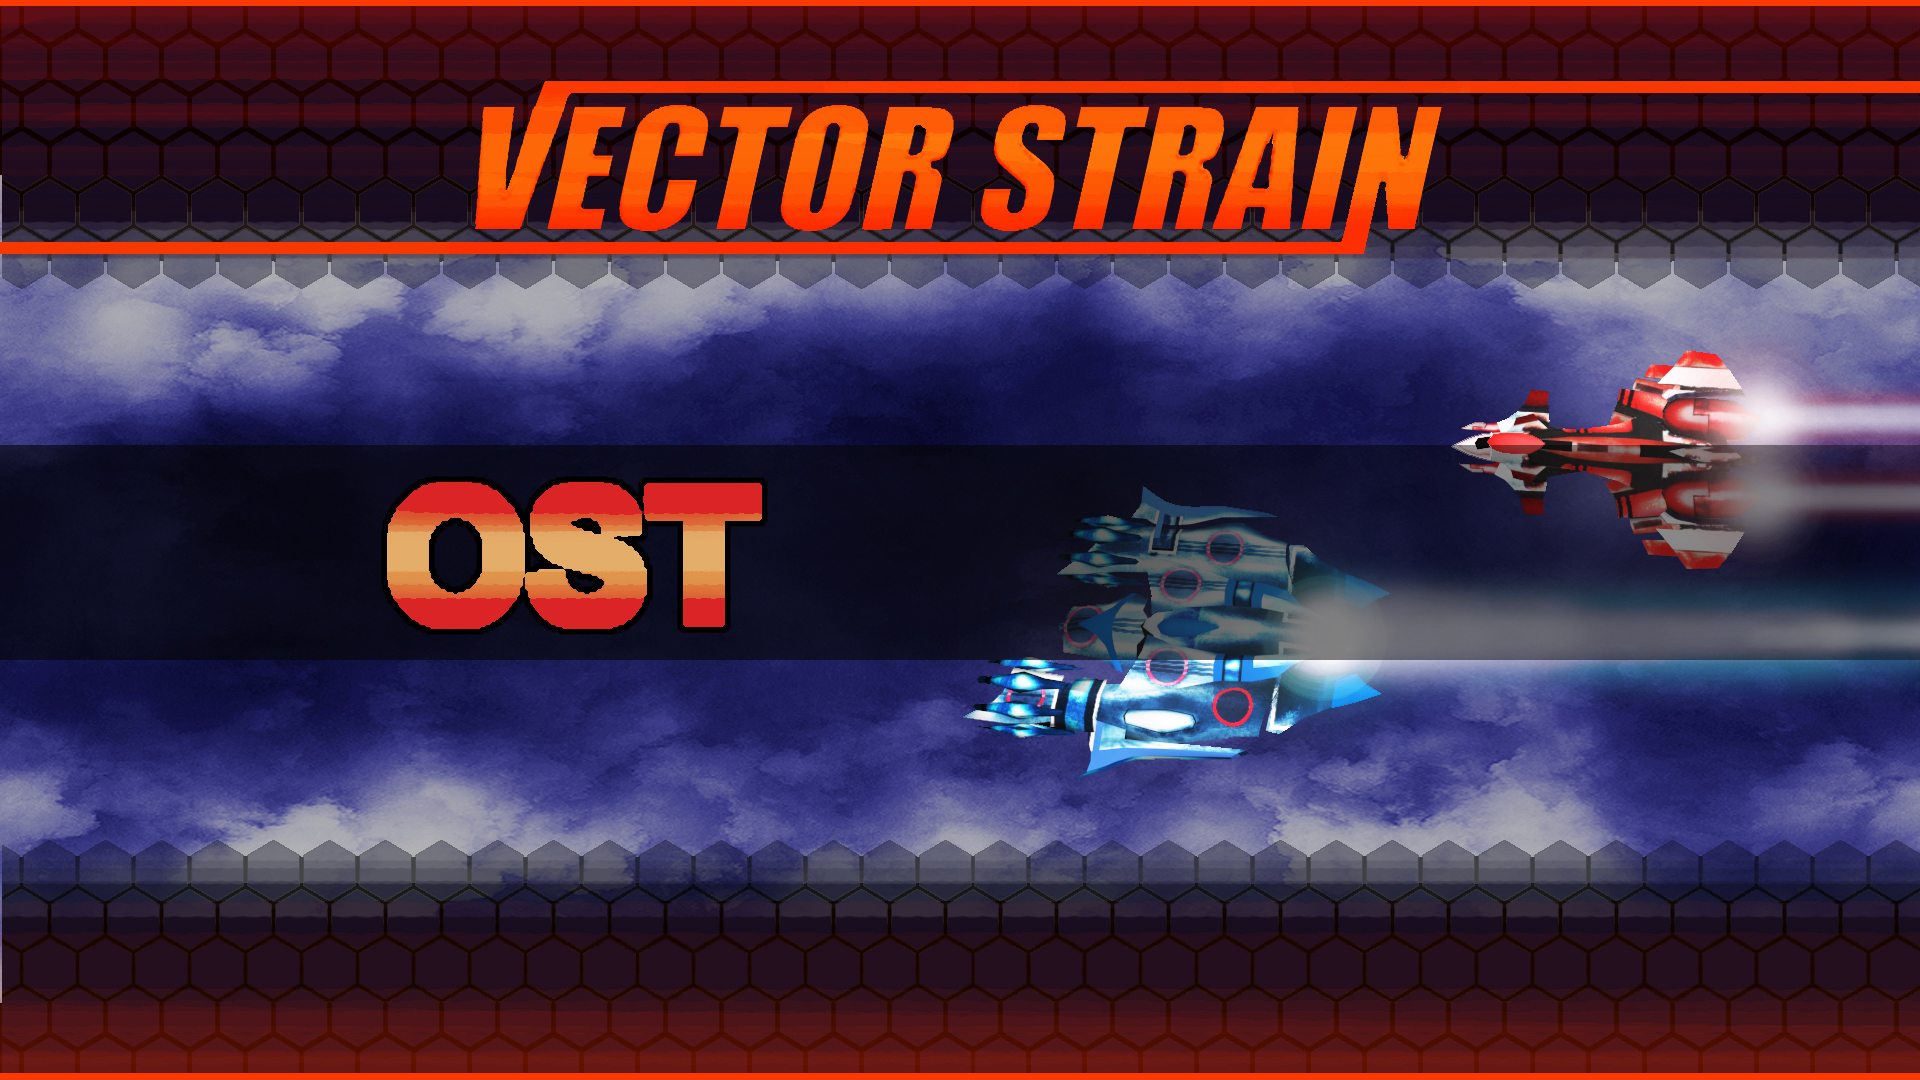 Vector Strain OST screenshot